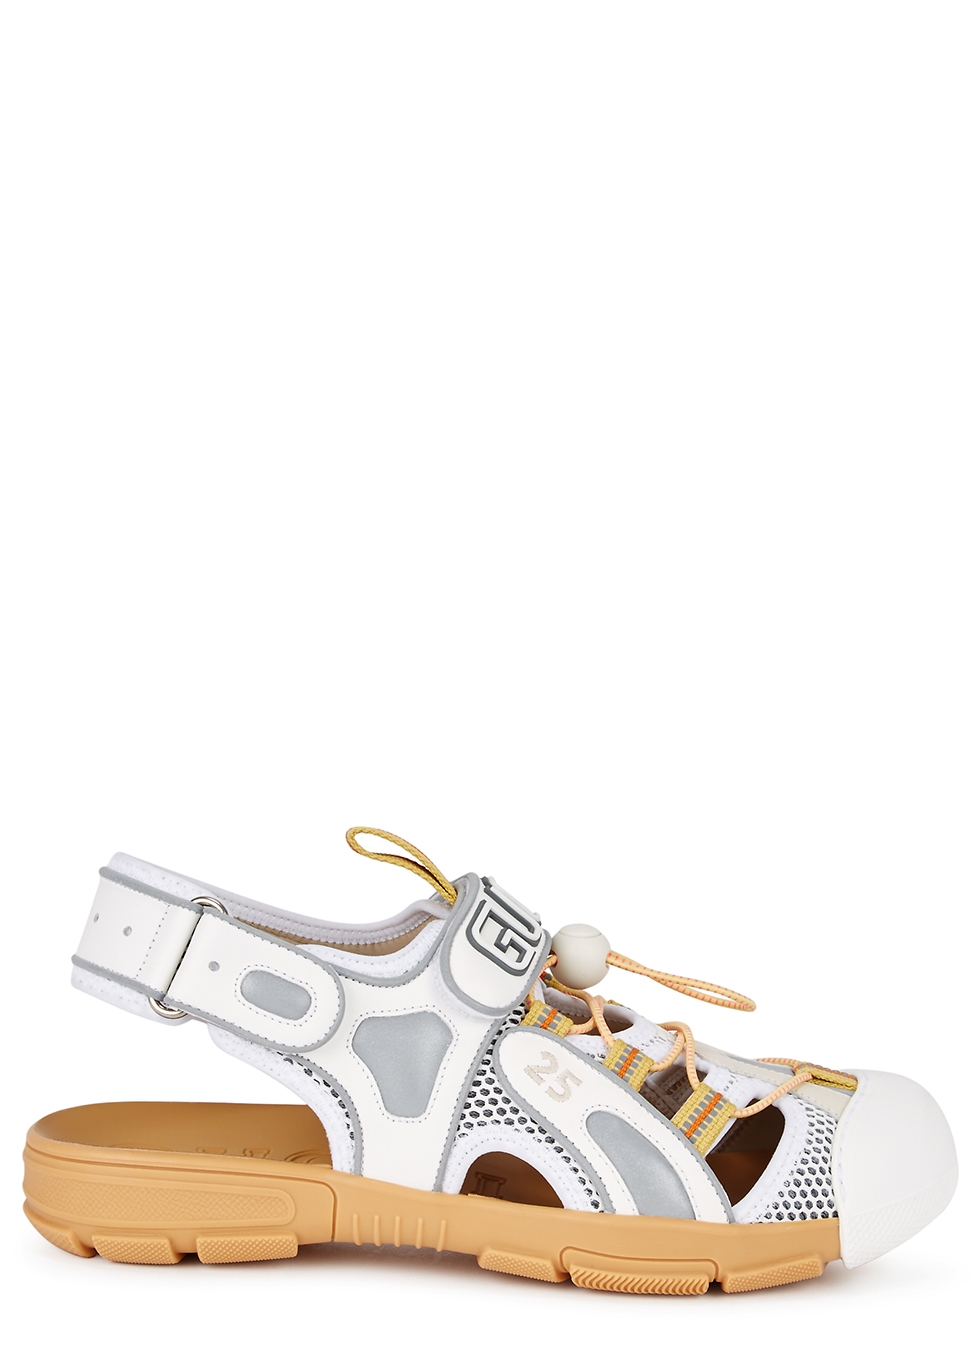 c7fcbfe10 Women s Designer Sandals - Harvey Nichols